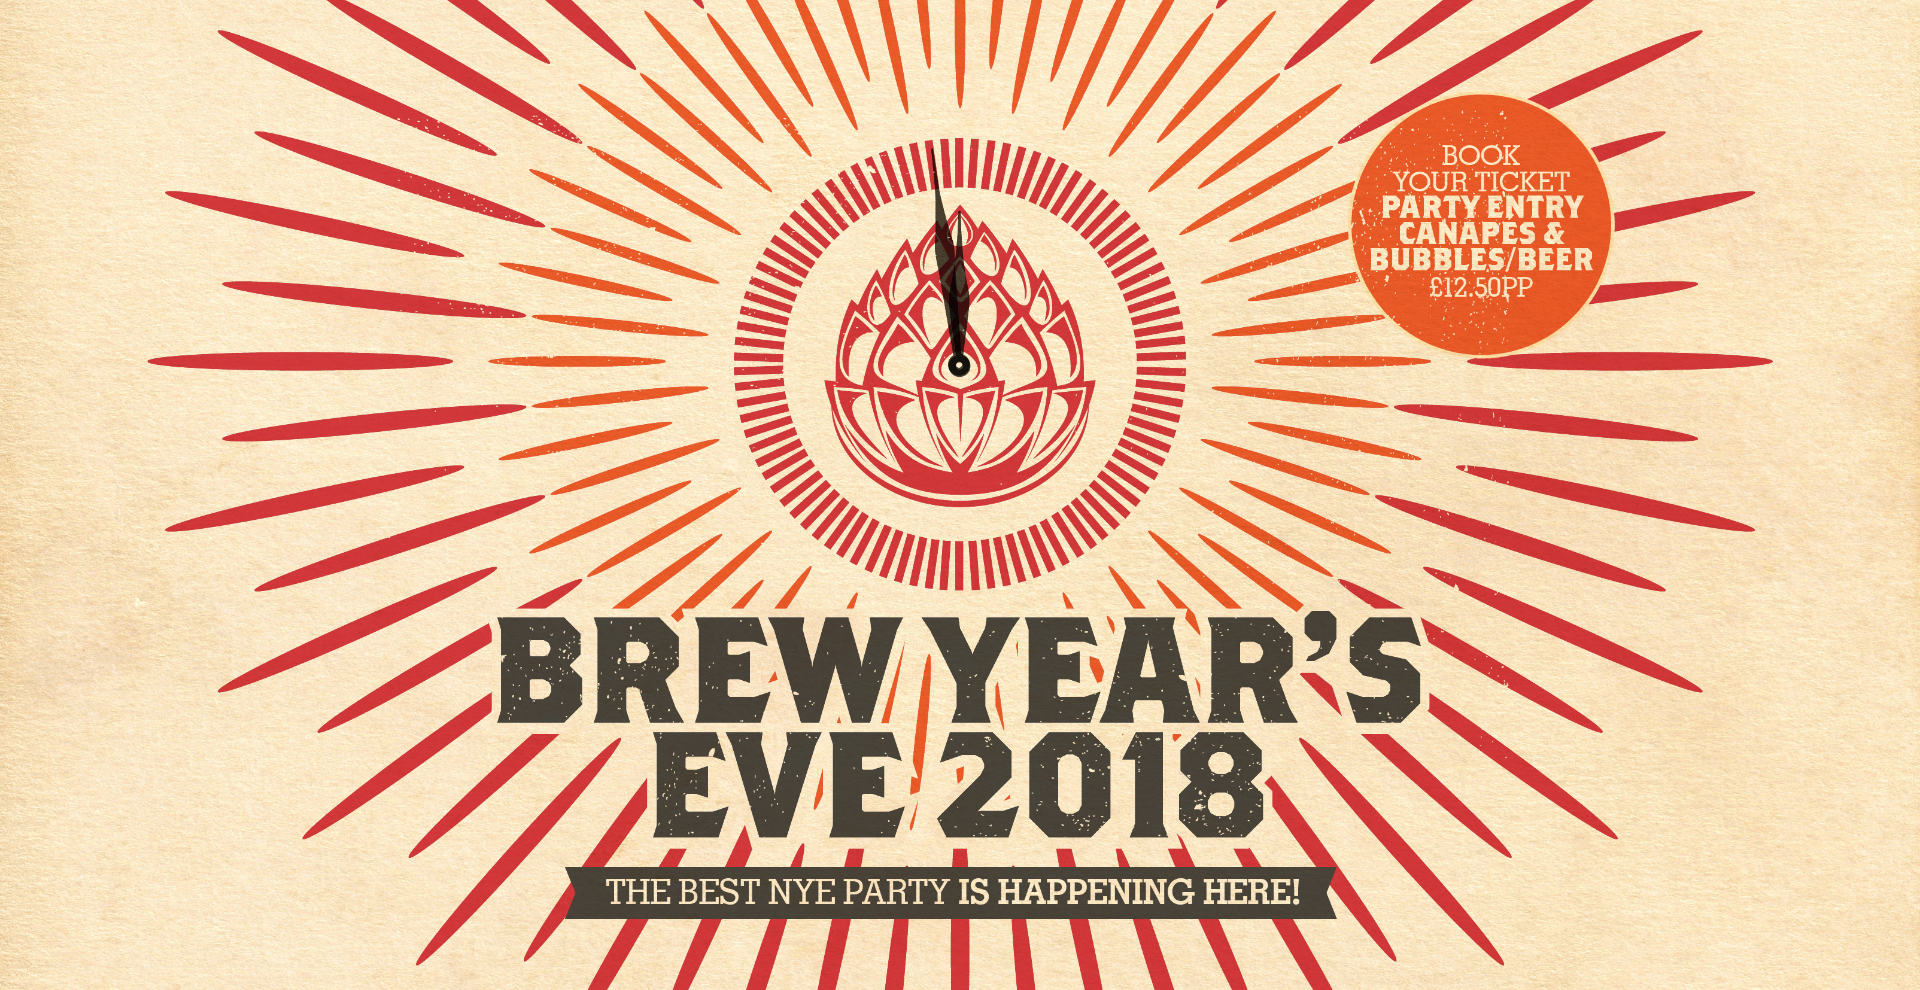 Brew Year's Eve - Cardiff